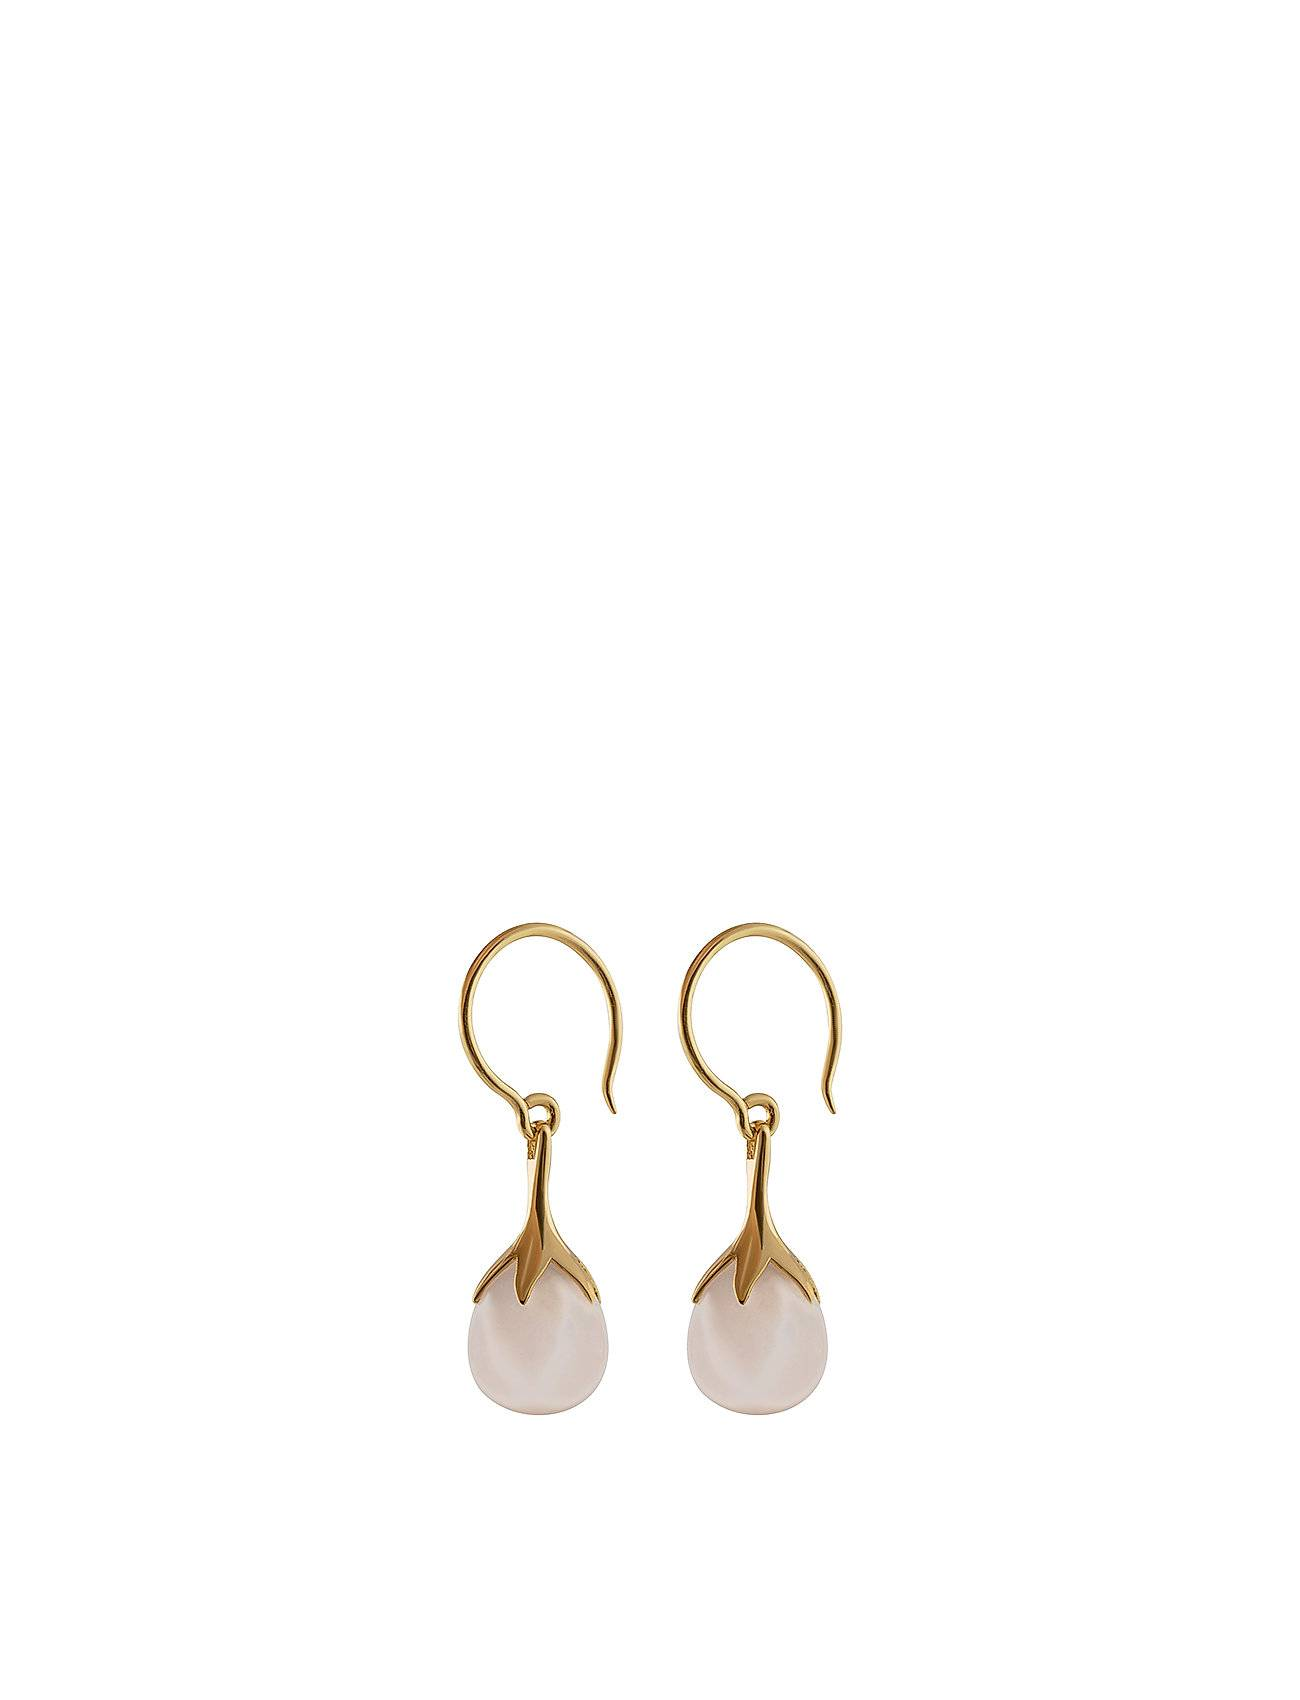 Syster P Dripping Earrings Gold Rose Quartz